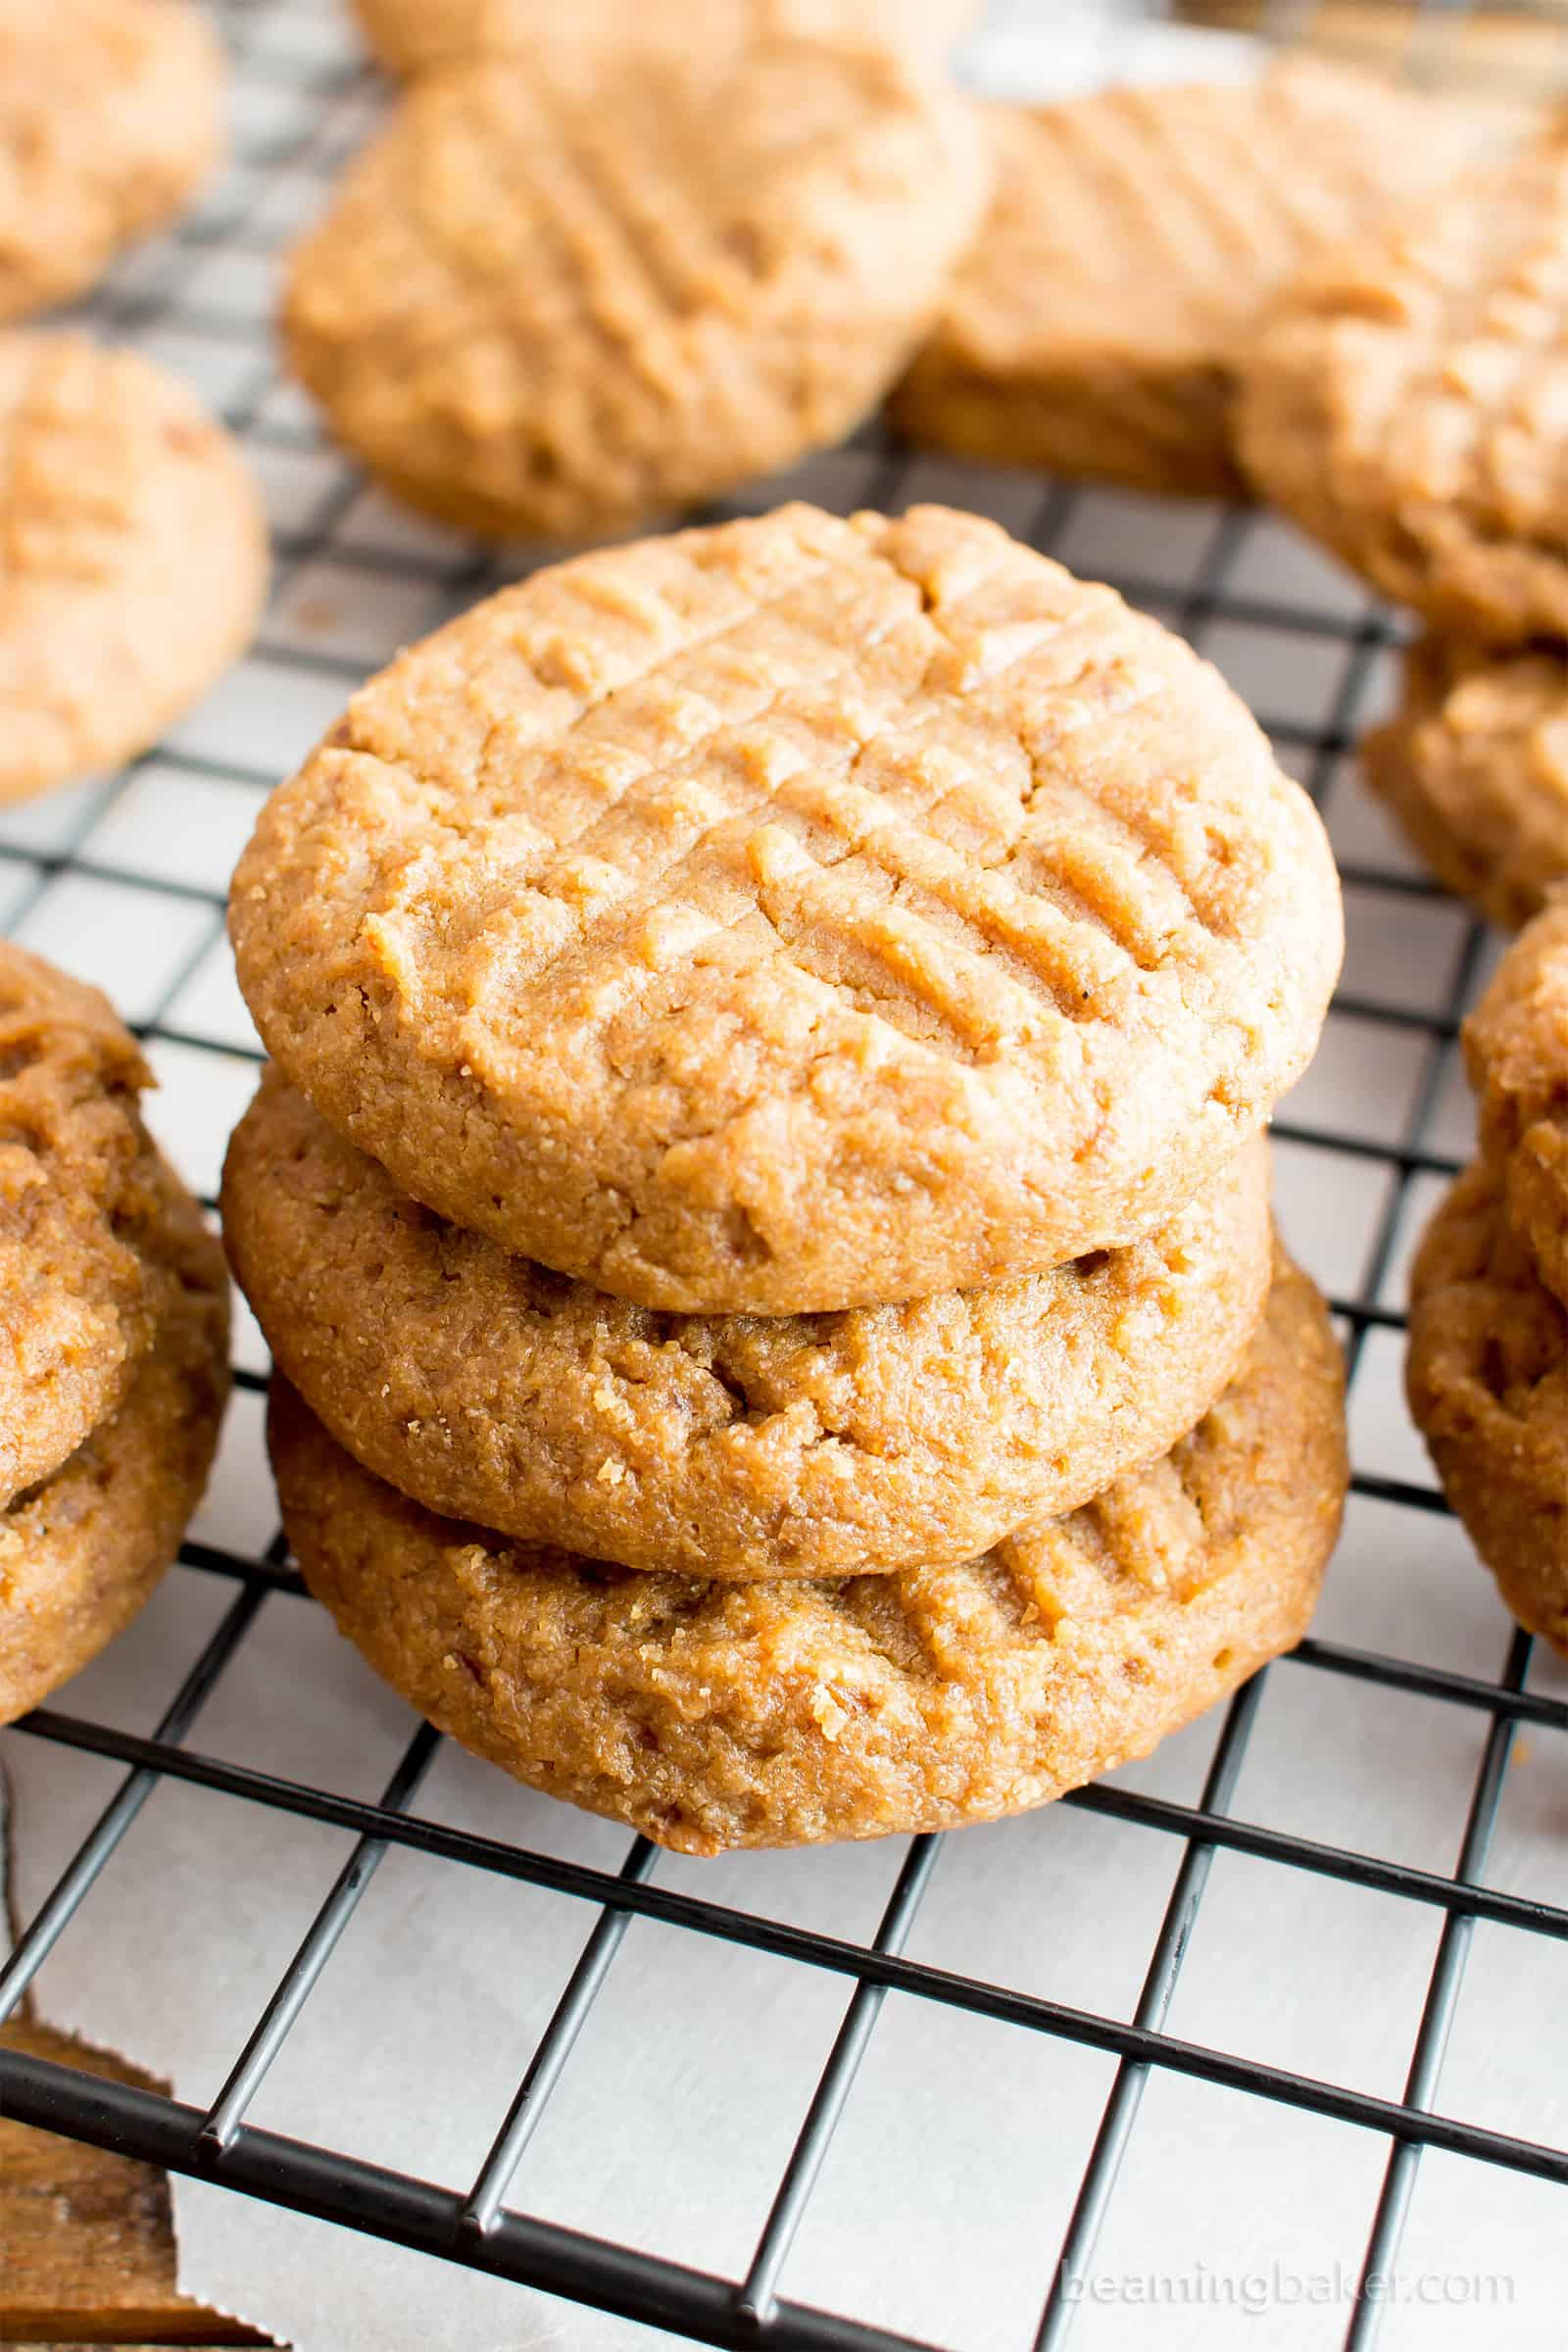 Easy Gluten Free Peanut Butter Cookies (V, GF): an easy recipe for soft and chewy gluten-free peanut butter cookies that taste just like the classics! #Vegan #GlutenFree #DairyFree #Dessert #Cookies | Recipe on BeamingBaker.com